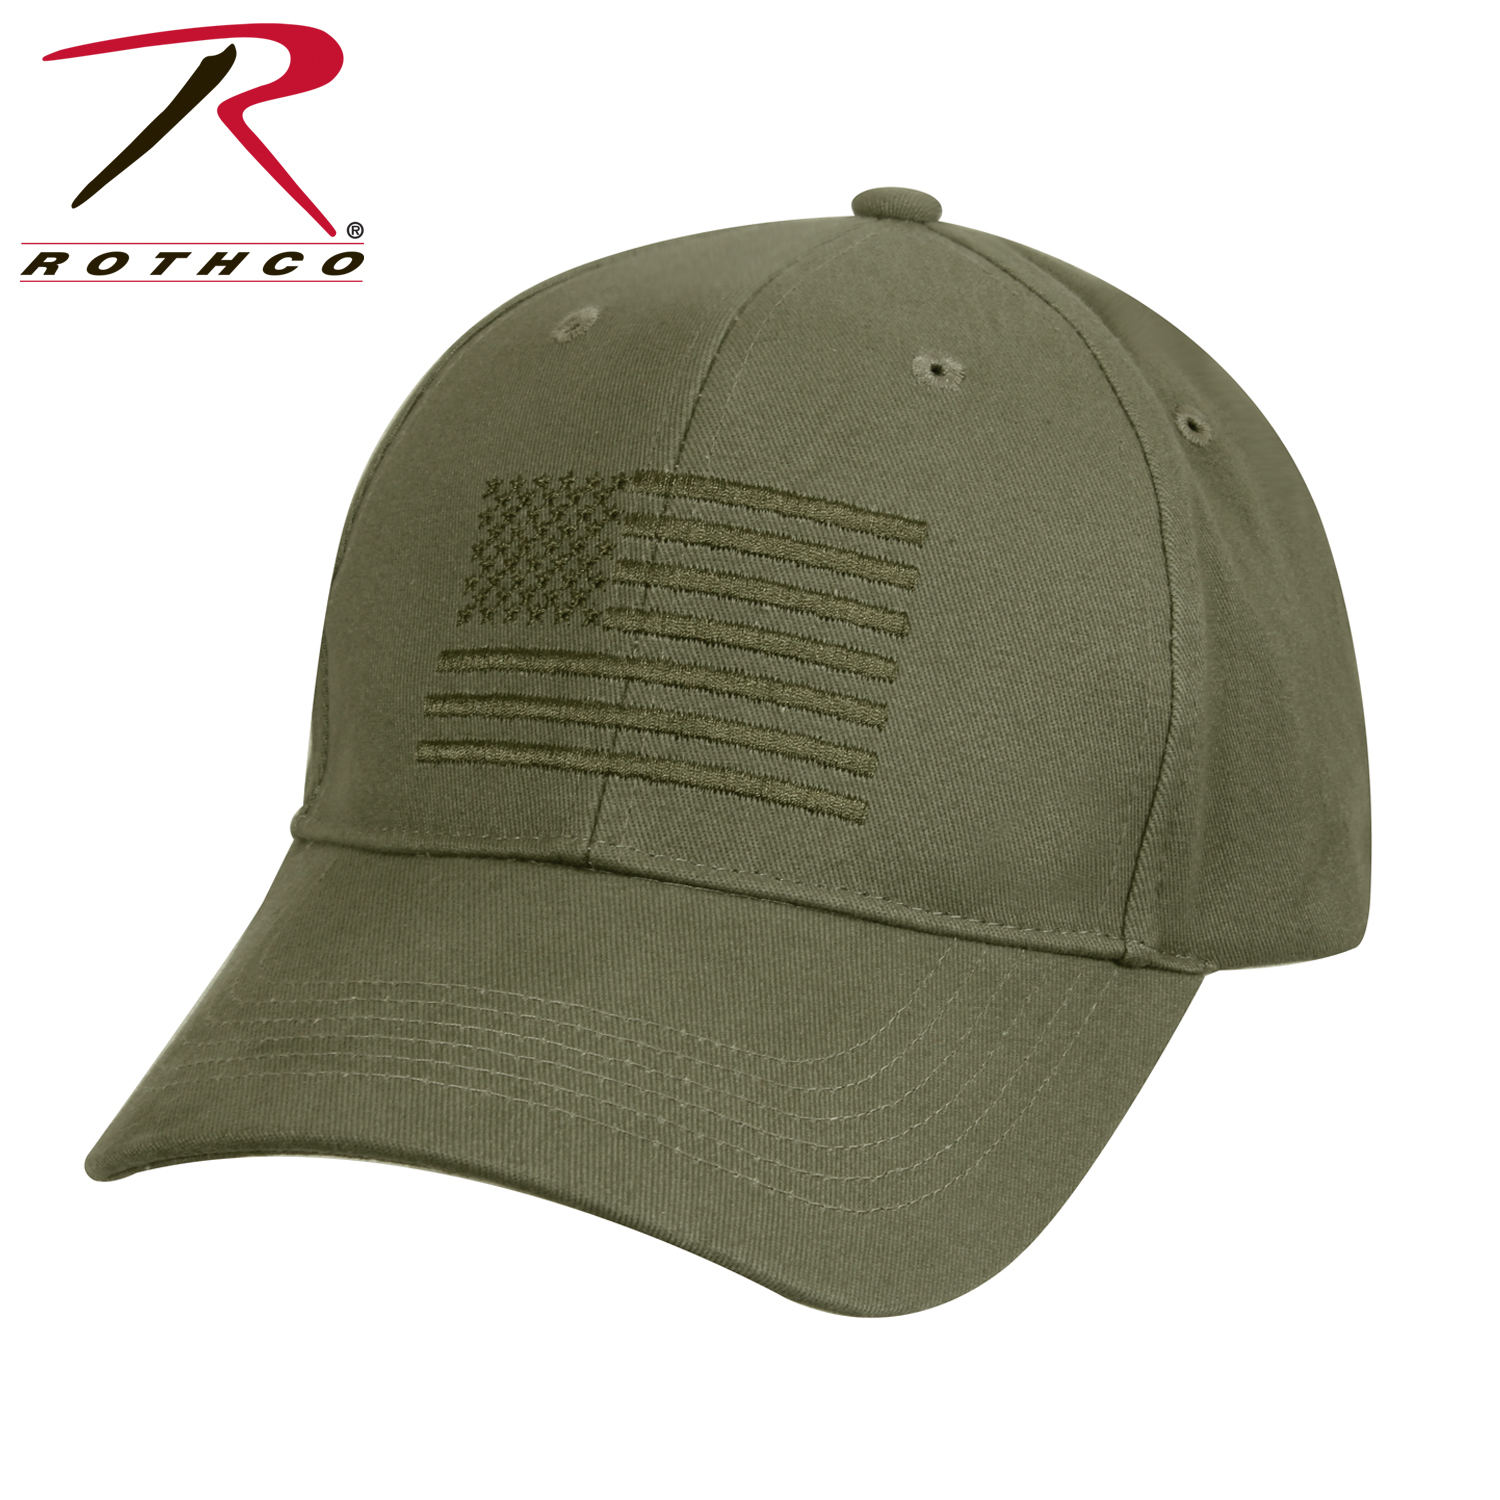 Rothco U.S. Flag Low Profile Cap 4a5f02225e2